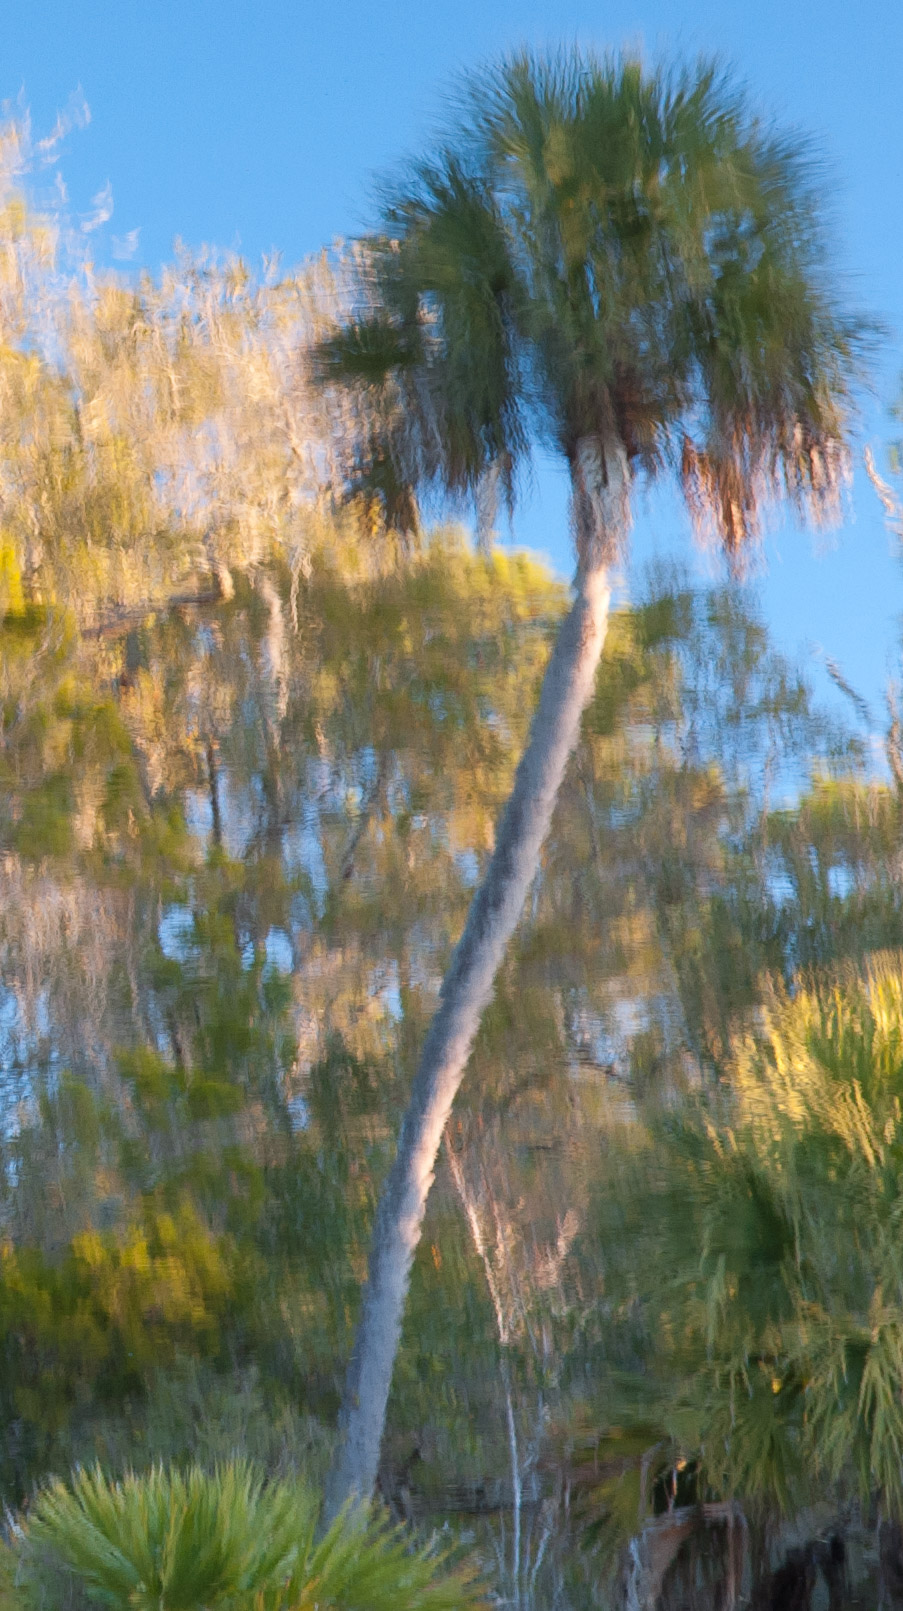 Cabbage Palm reflected in pond - Lower Suwannee National Wildlife Refuge, Florida